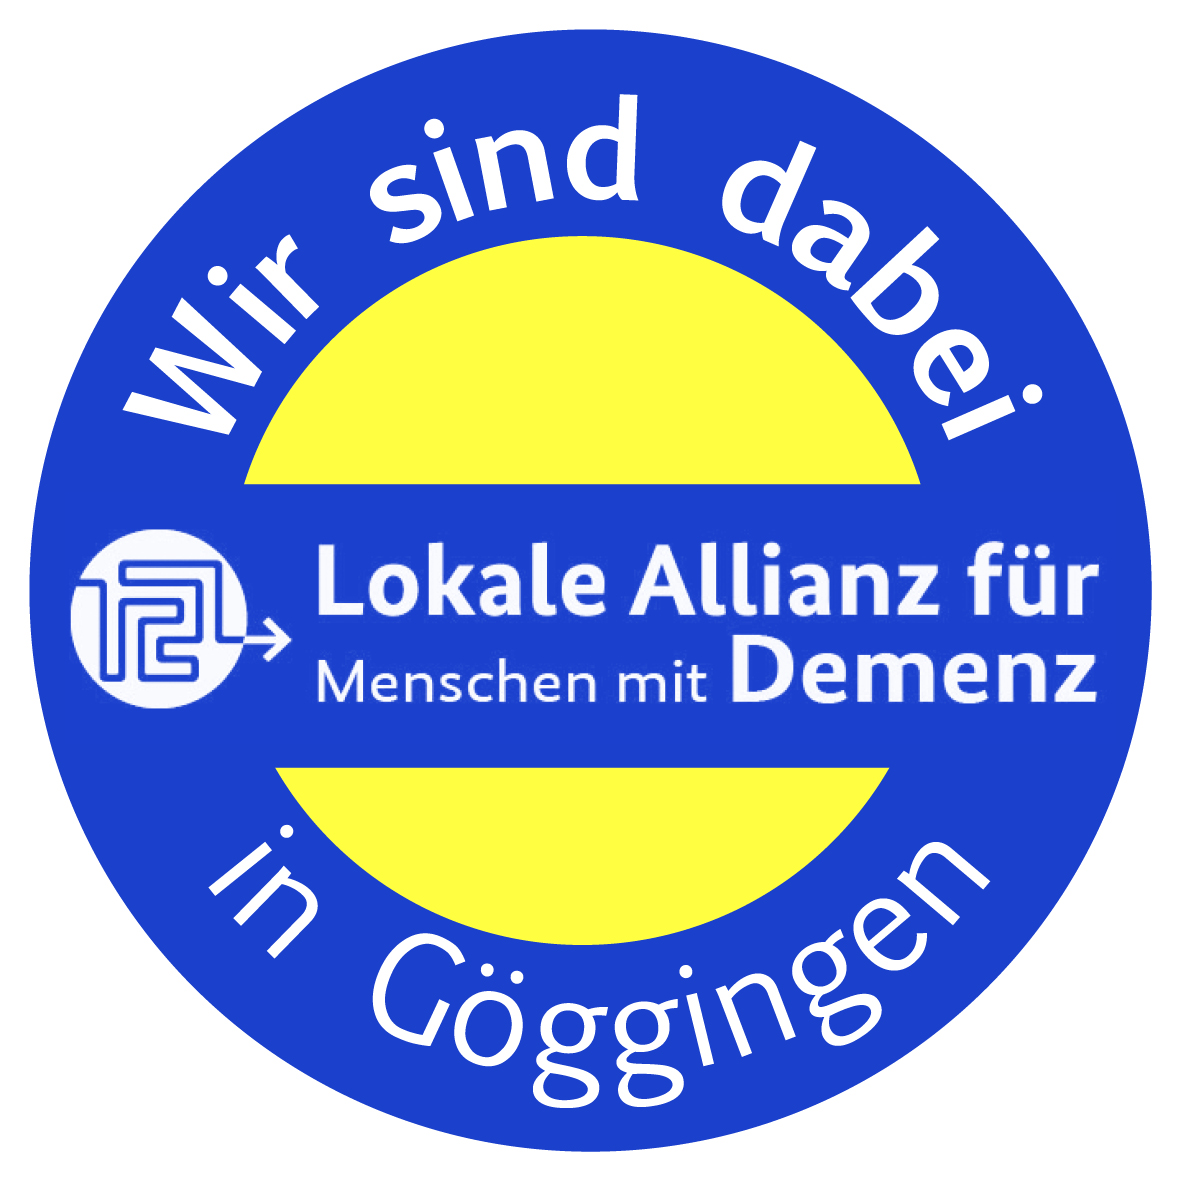 logo_lokale_allianzen.jpg